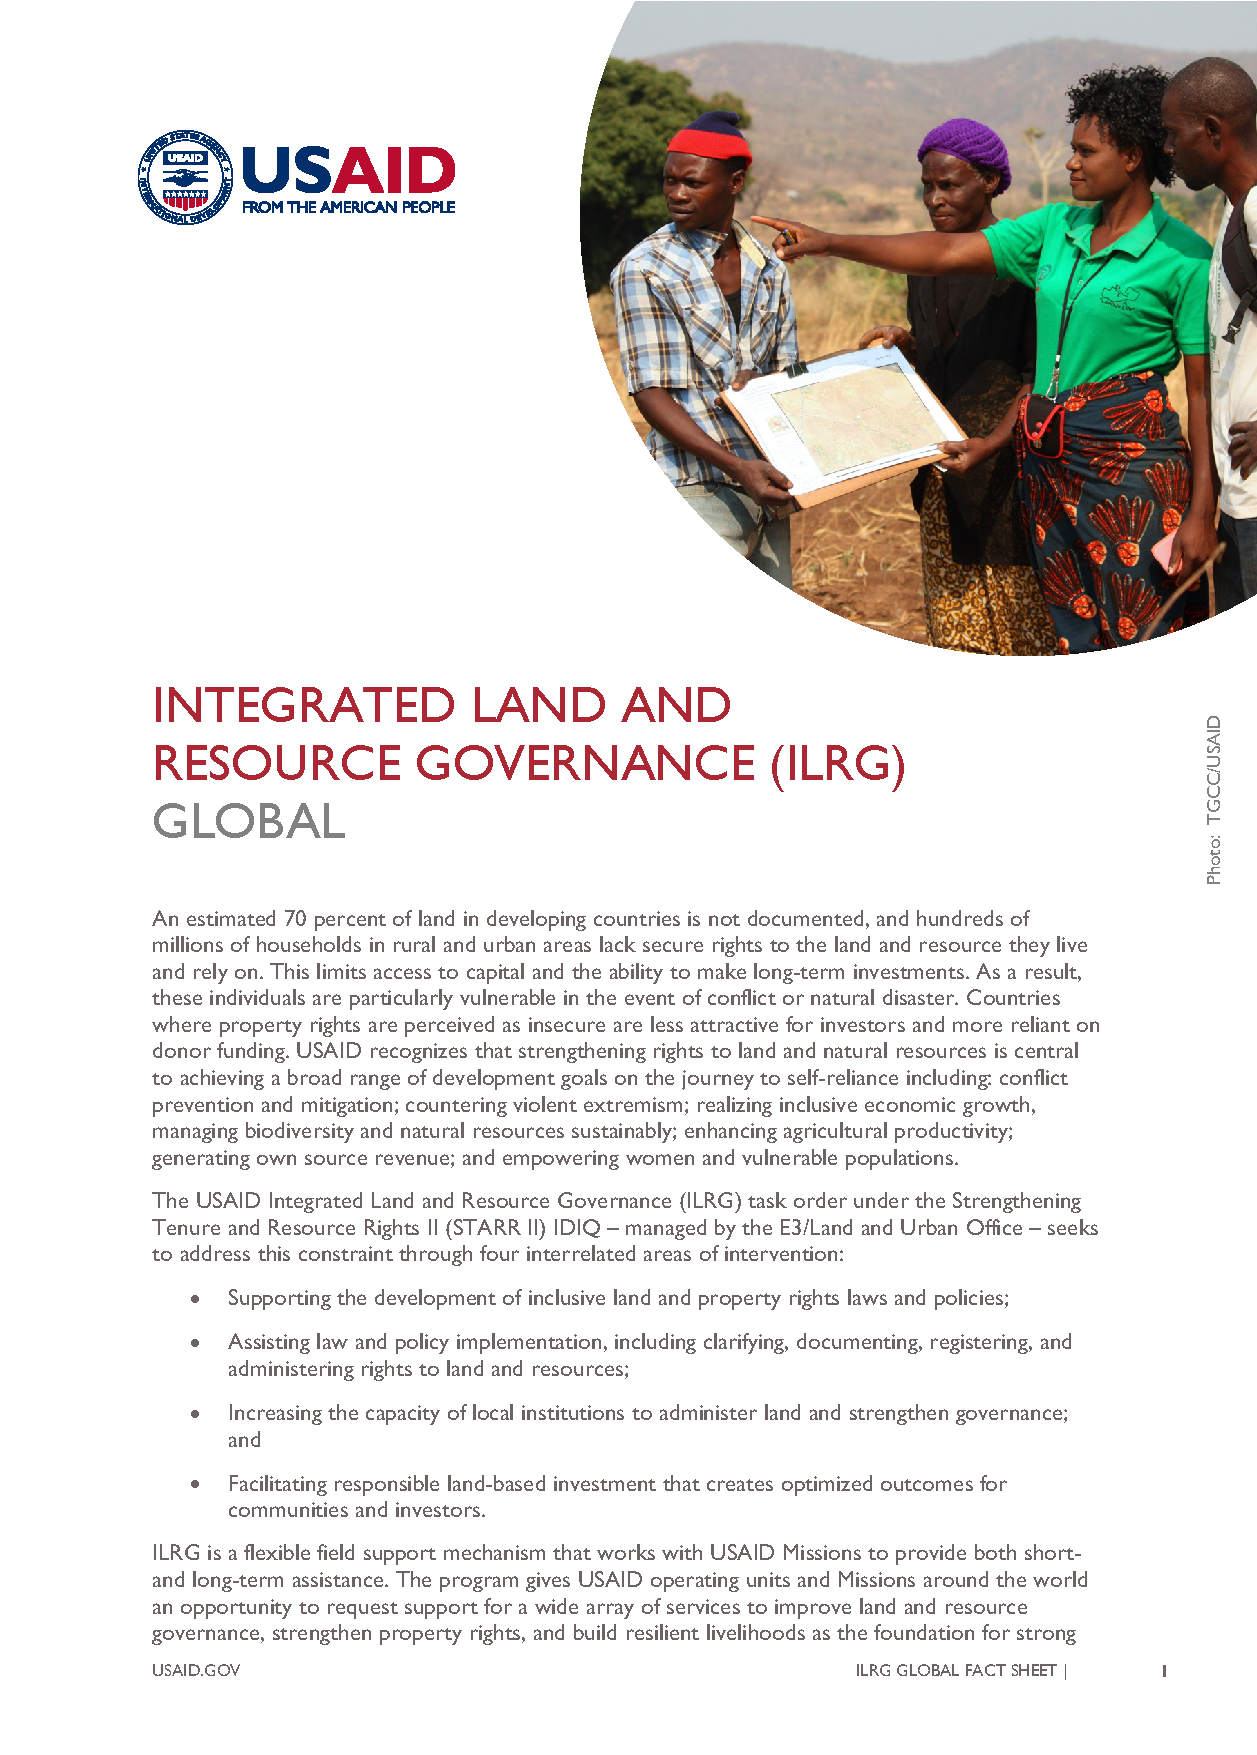 INTEGRATED LAND AND RESOURCE GOVERNANCE - GLOBAL - Fact Sheet